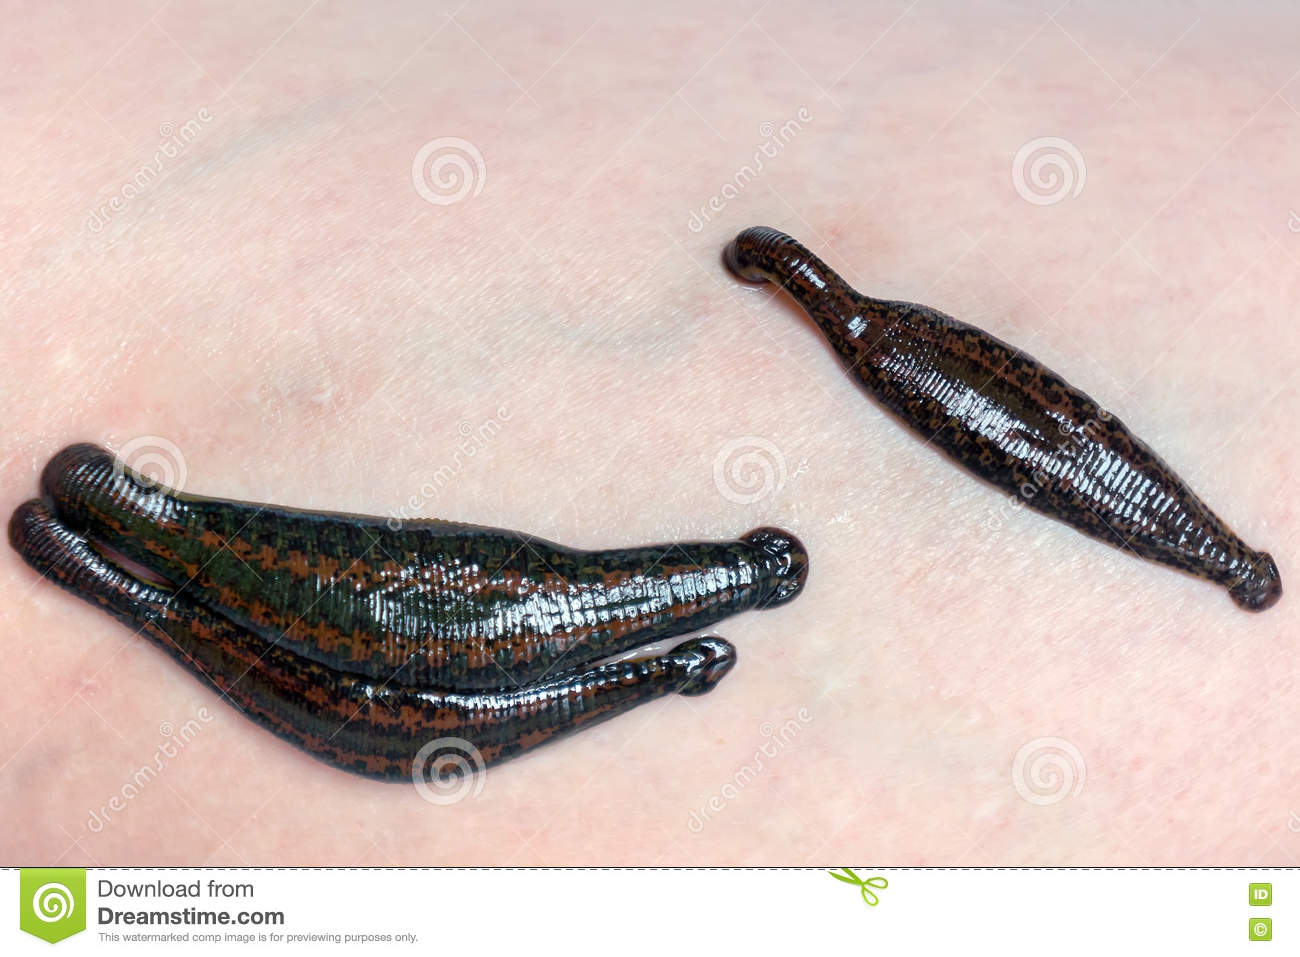 The use of leeches in modern therapeutic medicine